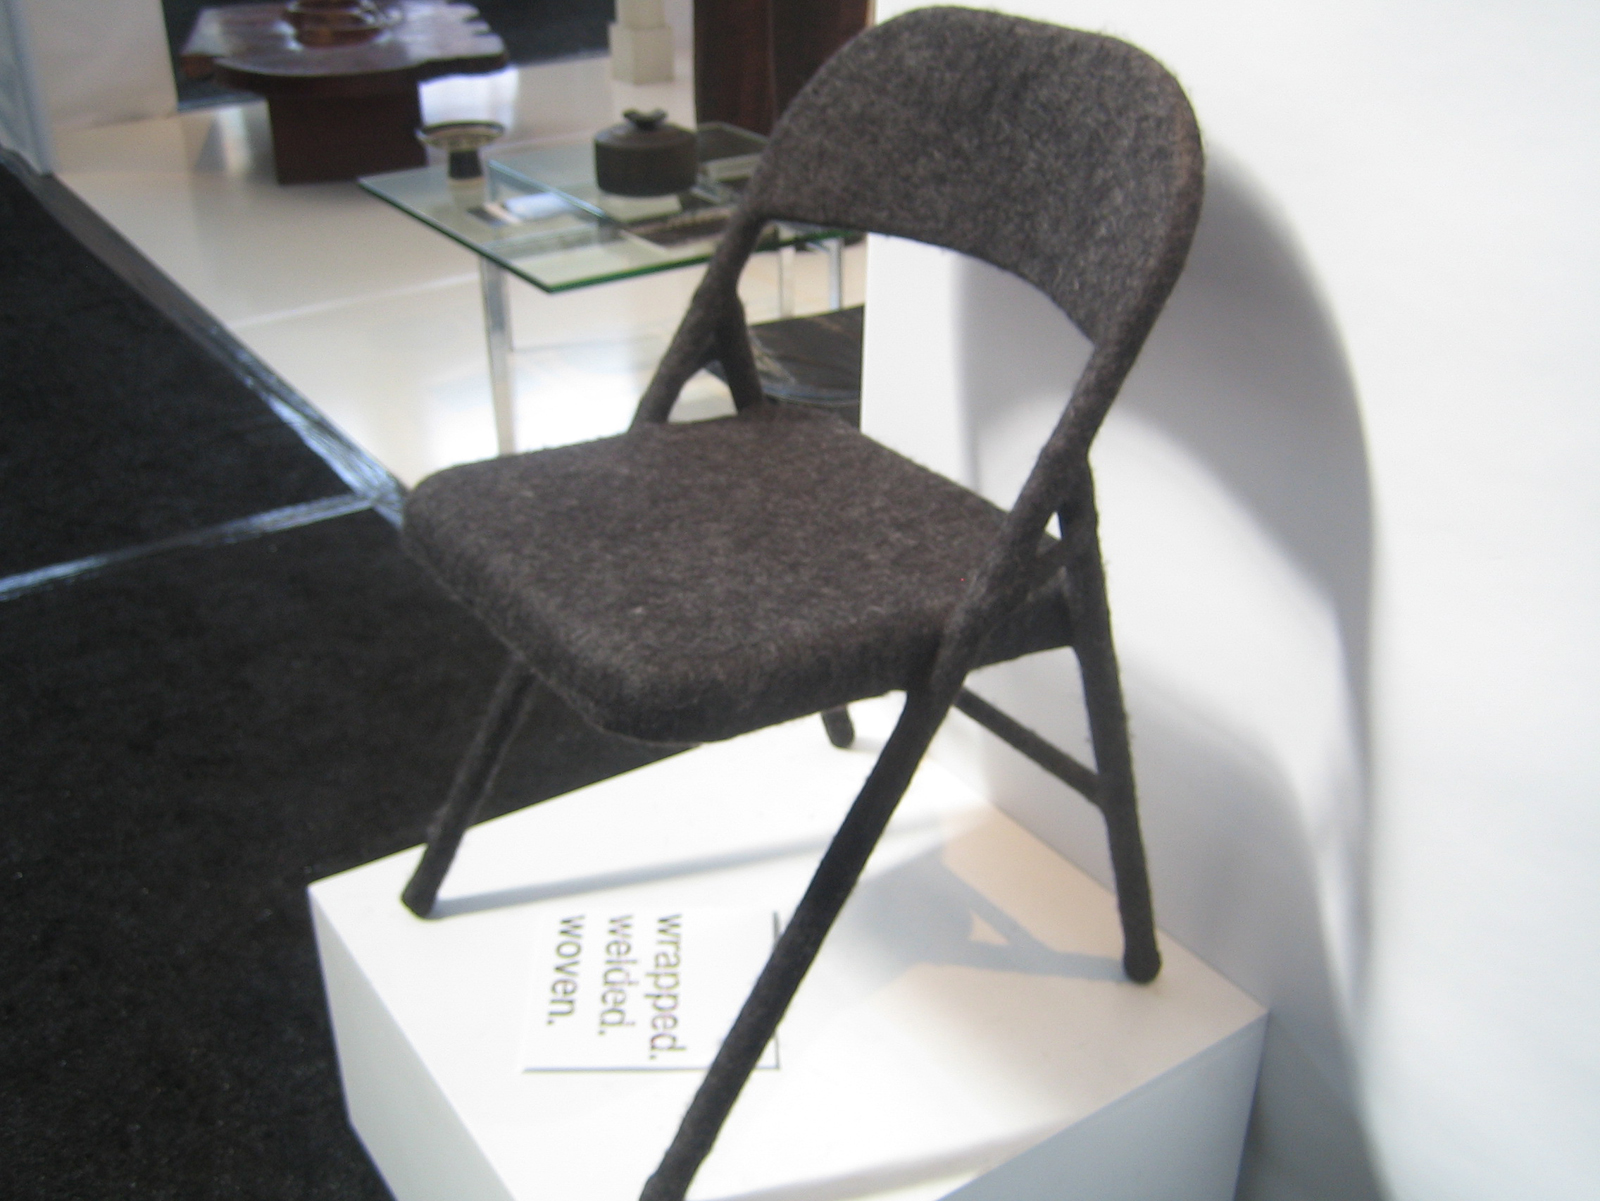 It may be hard to tell from the photo, but this standard metal folding chair has been felted in charcoal wool. Artist Tanya Aguiniga creates incredible furniture by wrapping, welding and weaving iconic and generic pieces. -Sarah